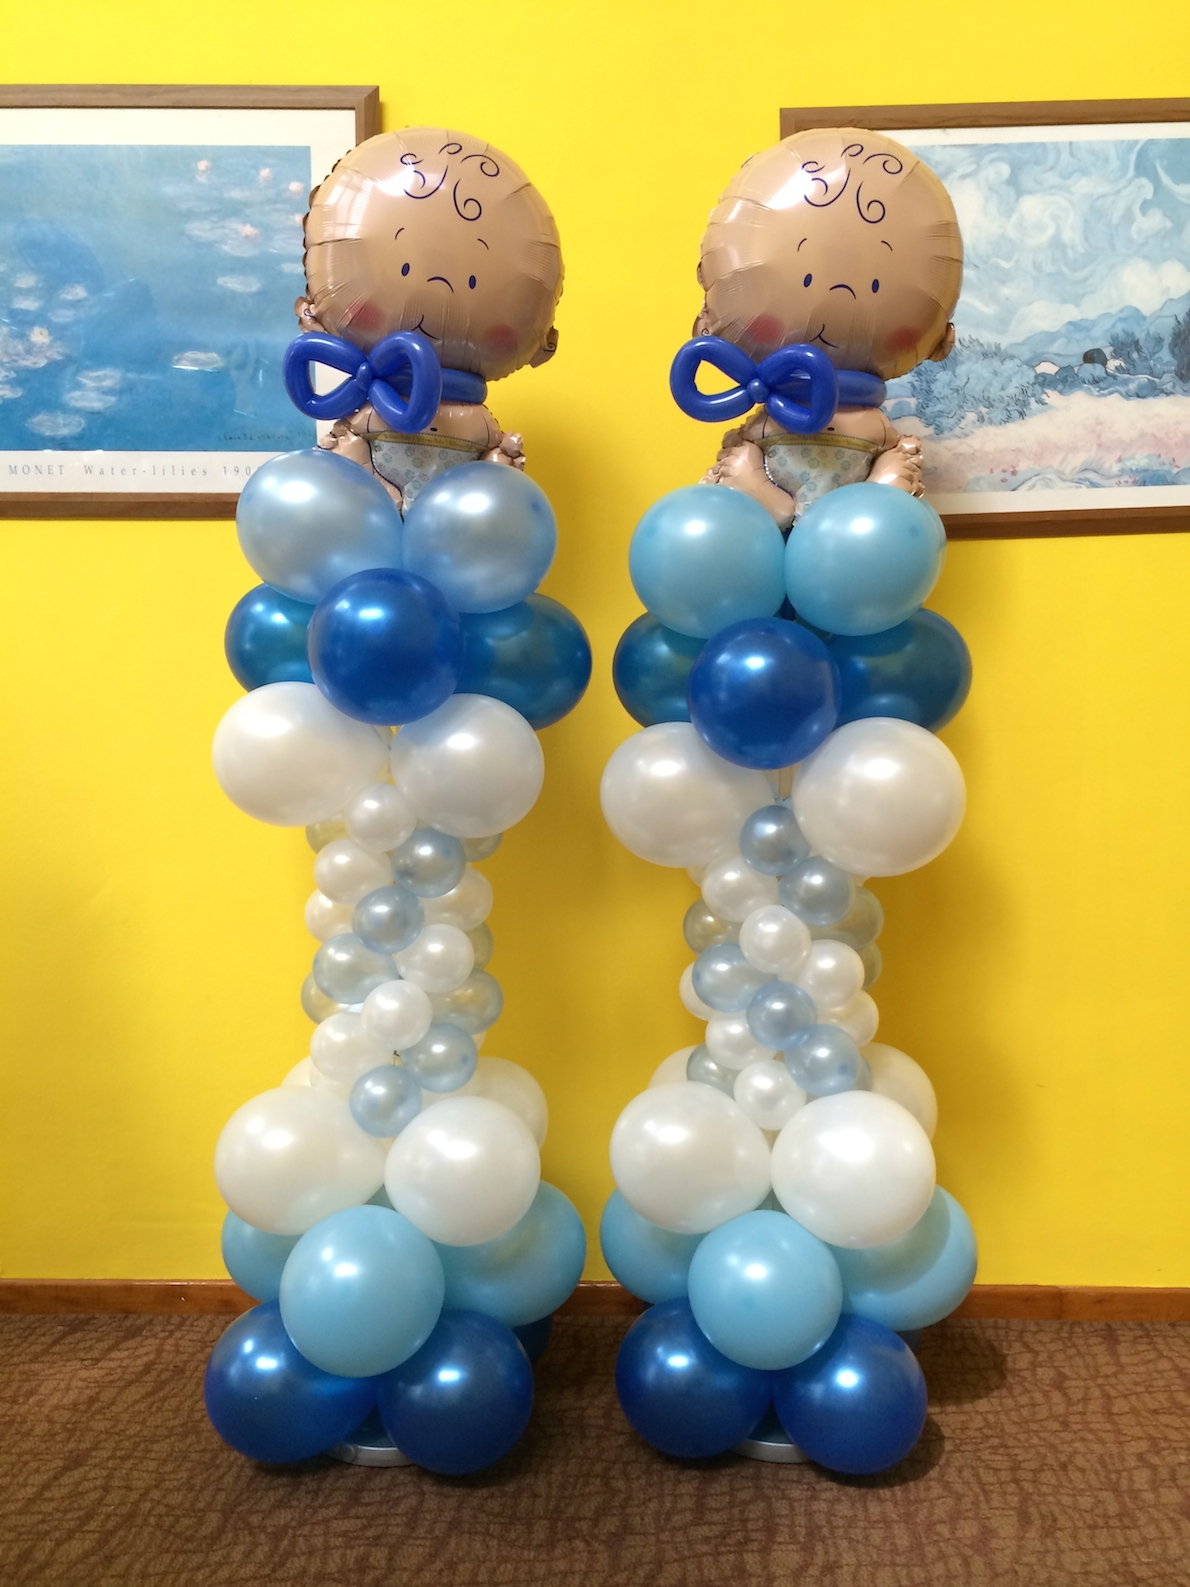 Baby birthday balloon decorations that balloons for Baby birthday decoration ideas